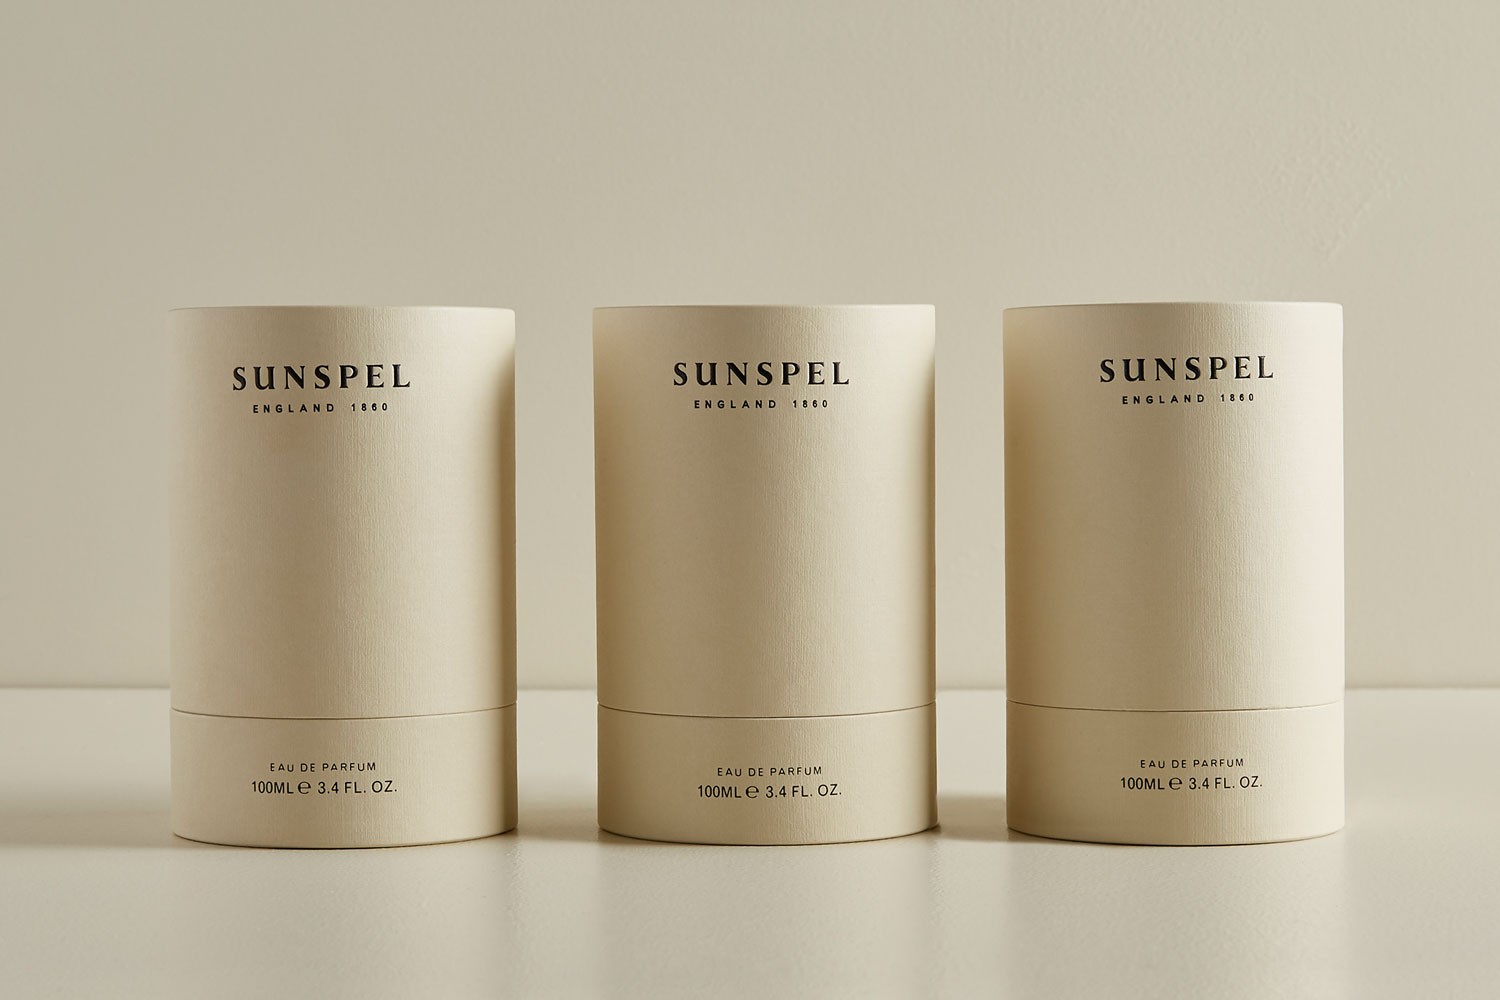 Progress Packaging Sunspel Beauty Fragrance Bottle Candle Glass Retail Luxury Carton Gift Branded Bespoke Creative Black Foill Manufacture Production 02